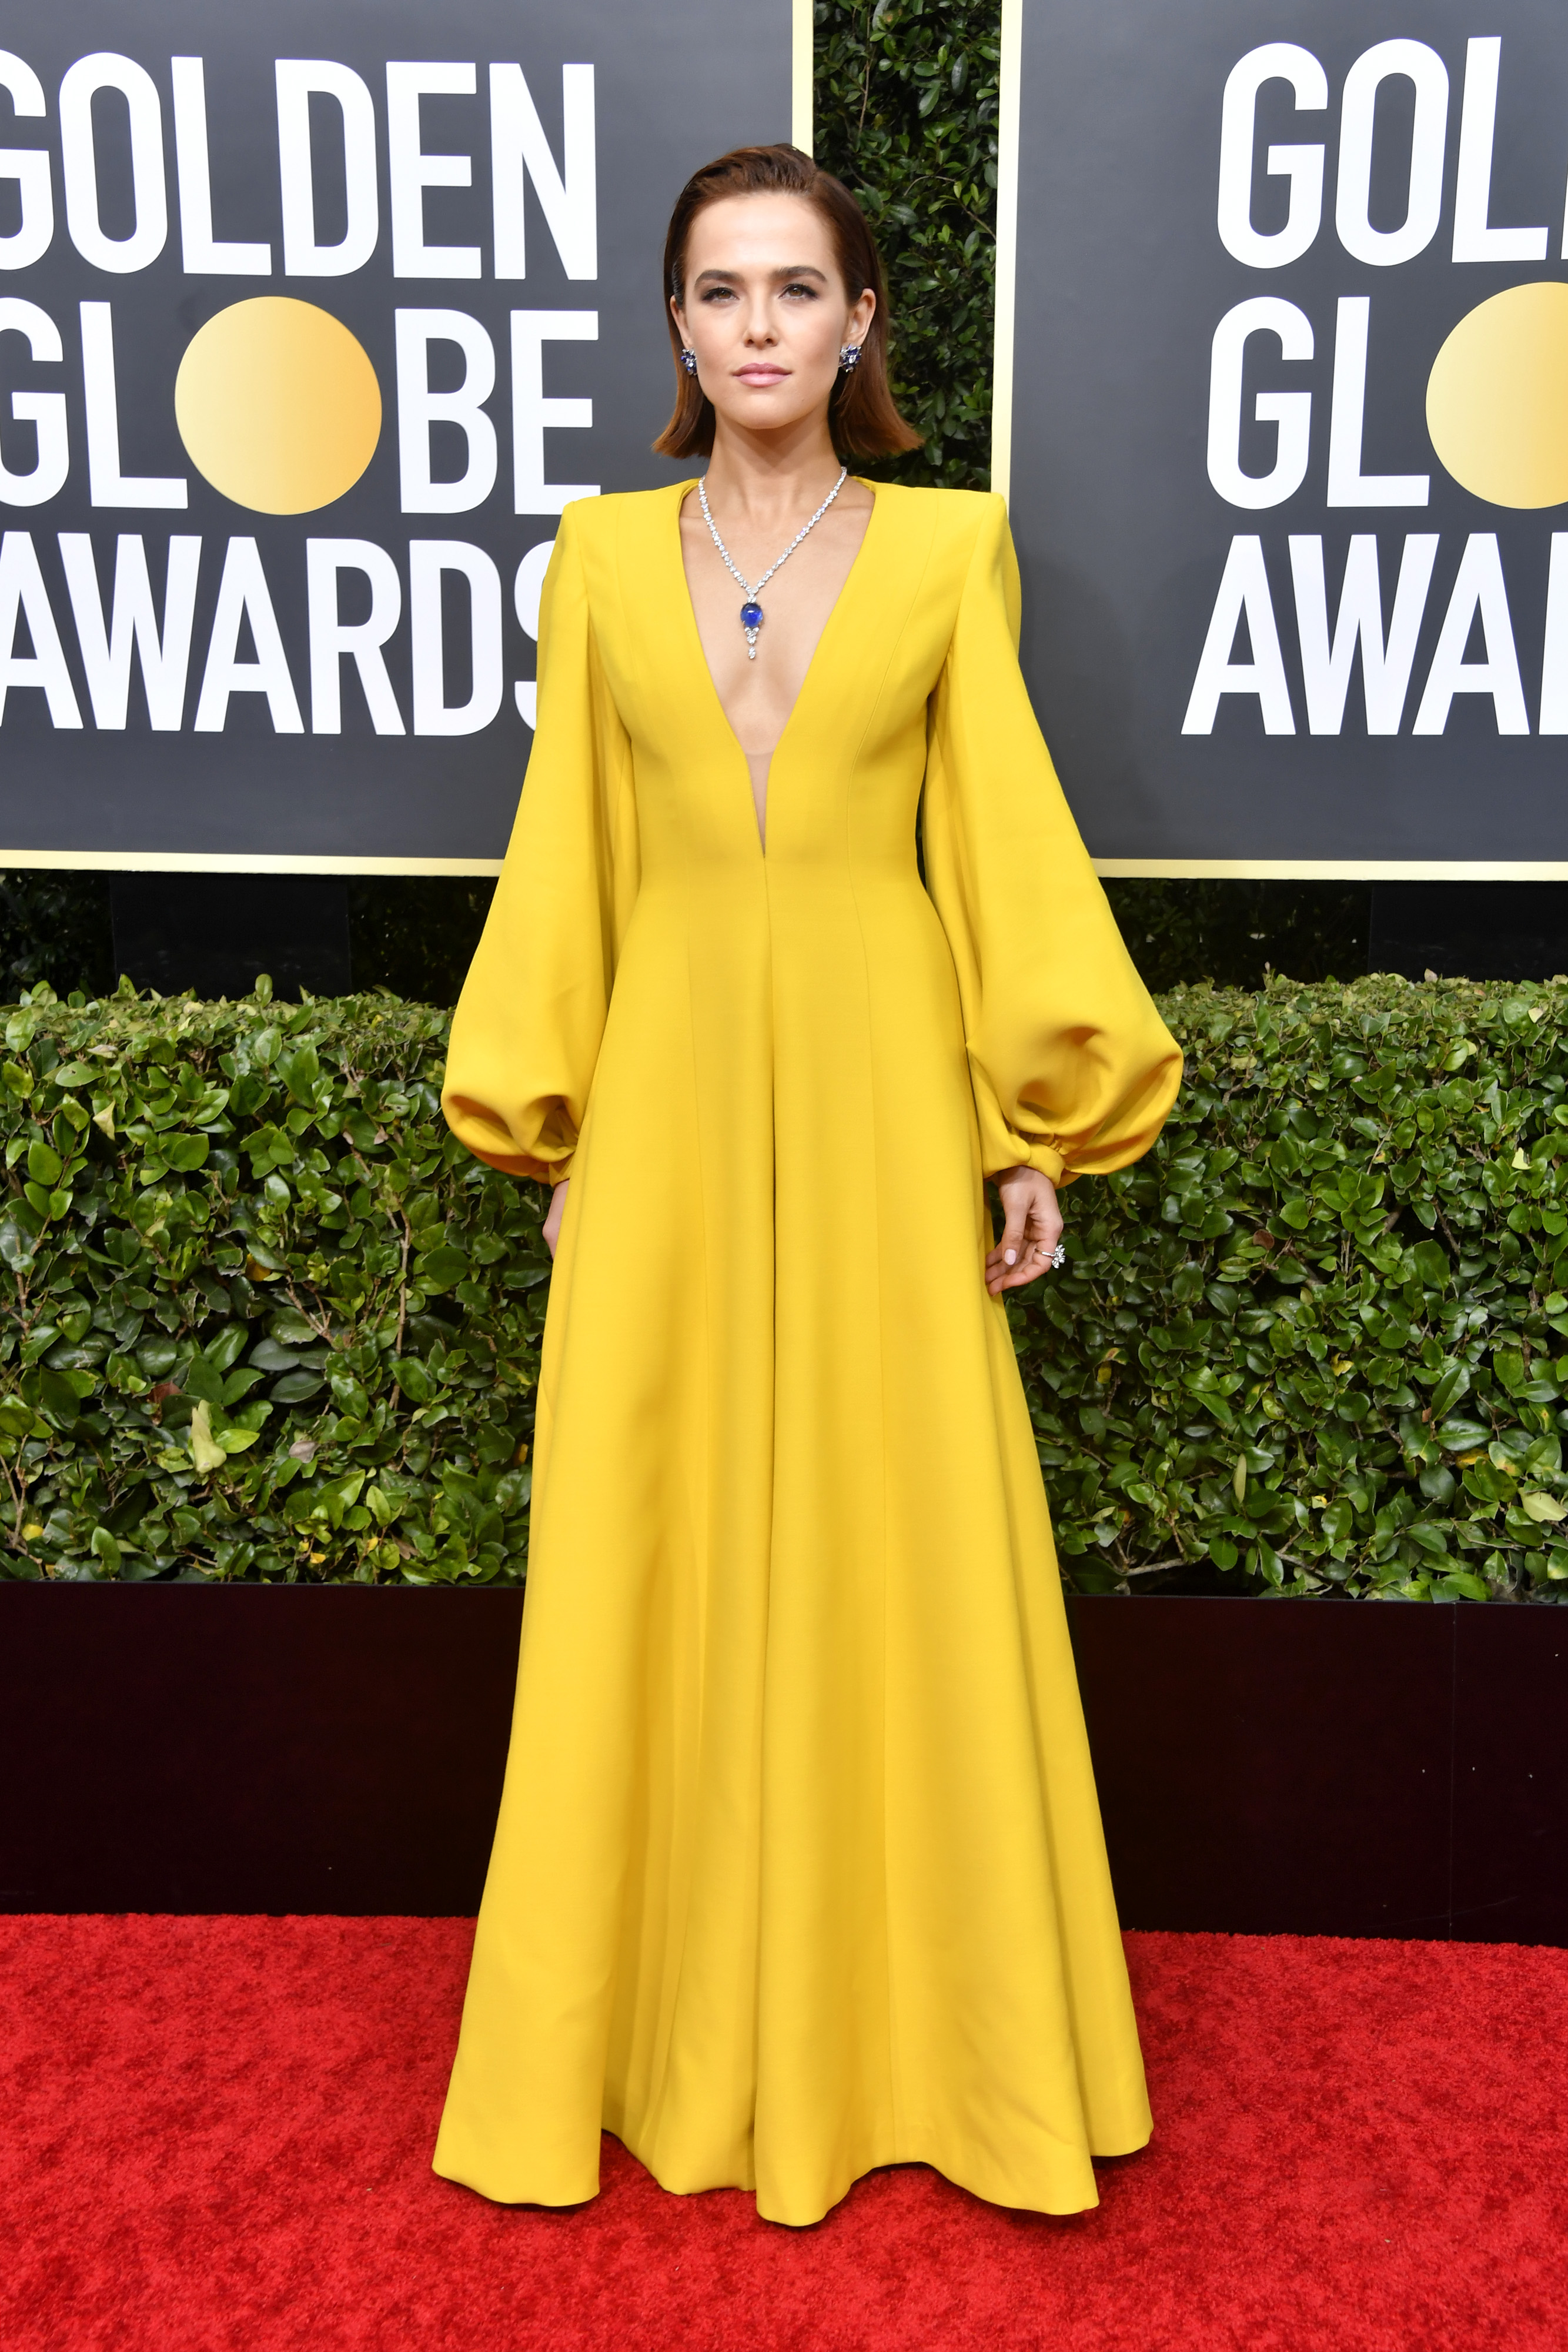 BEVERLY HILLS, CALIFORNIA - JANUARY 05: Zoey Deutch attends the 77th Annual Golden Globe Awards at The Beverly Hilton Hotel on January 05, 2020 in Beverly Hills, California. (Photo by Frazer Harrison/Getty Images)